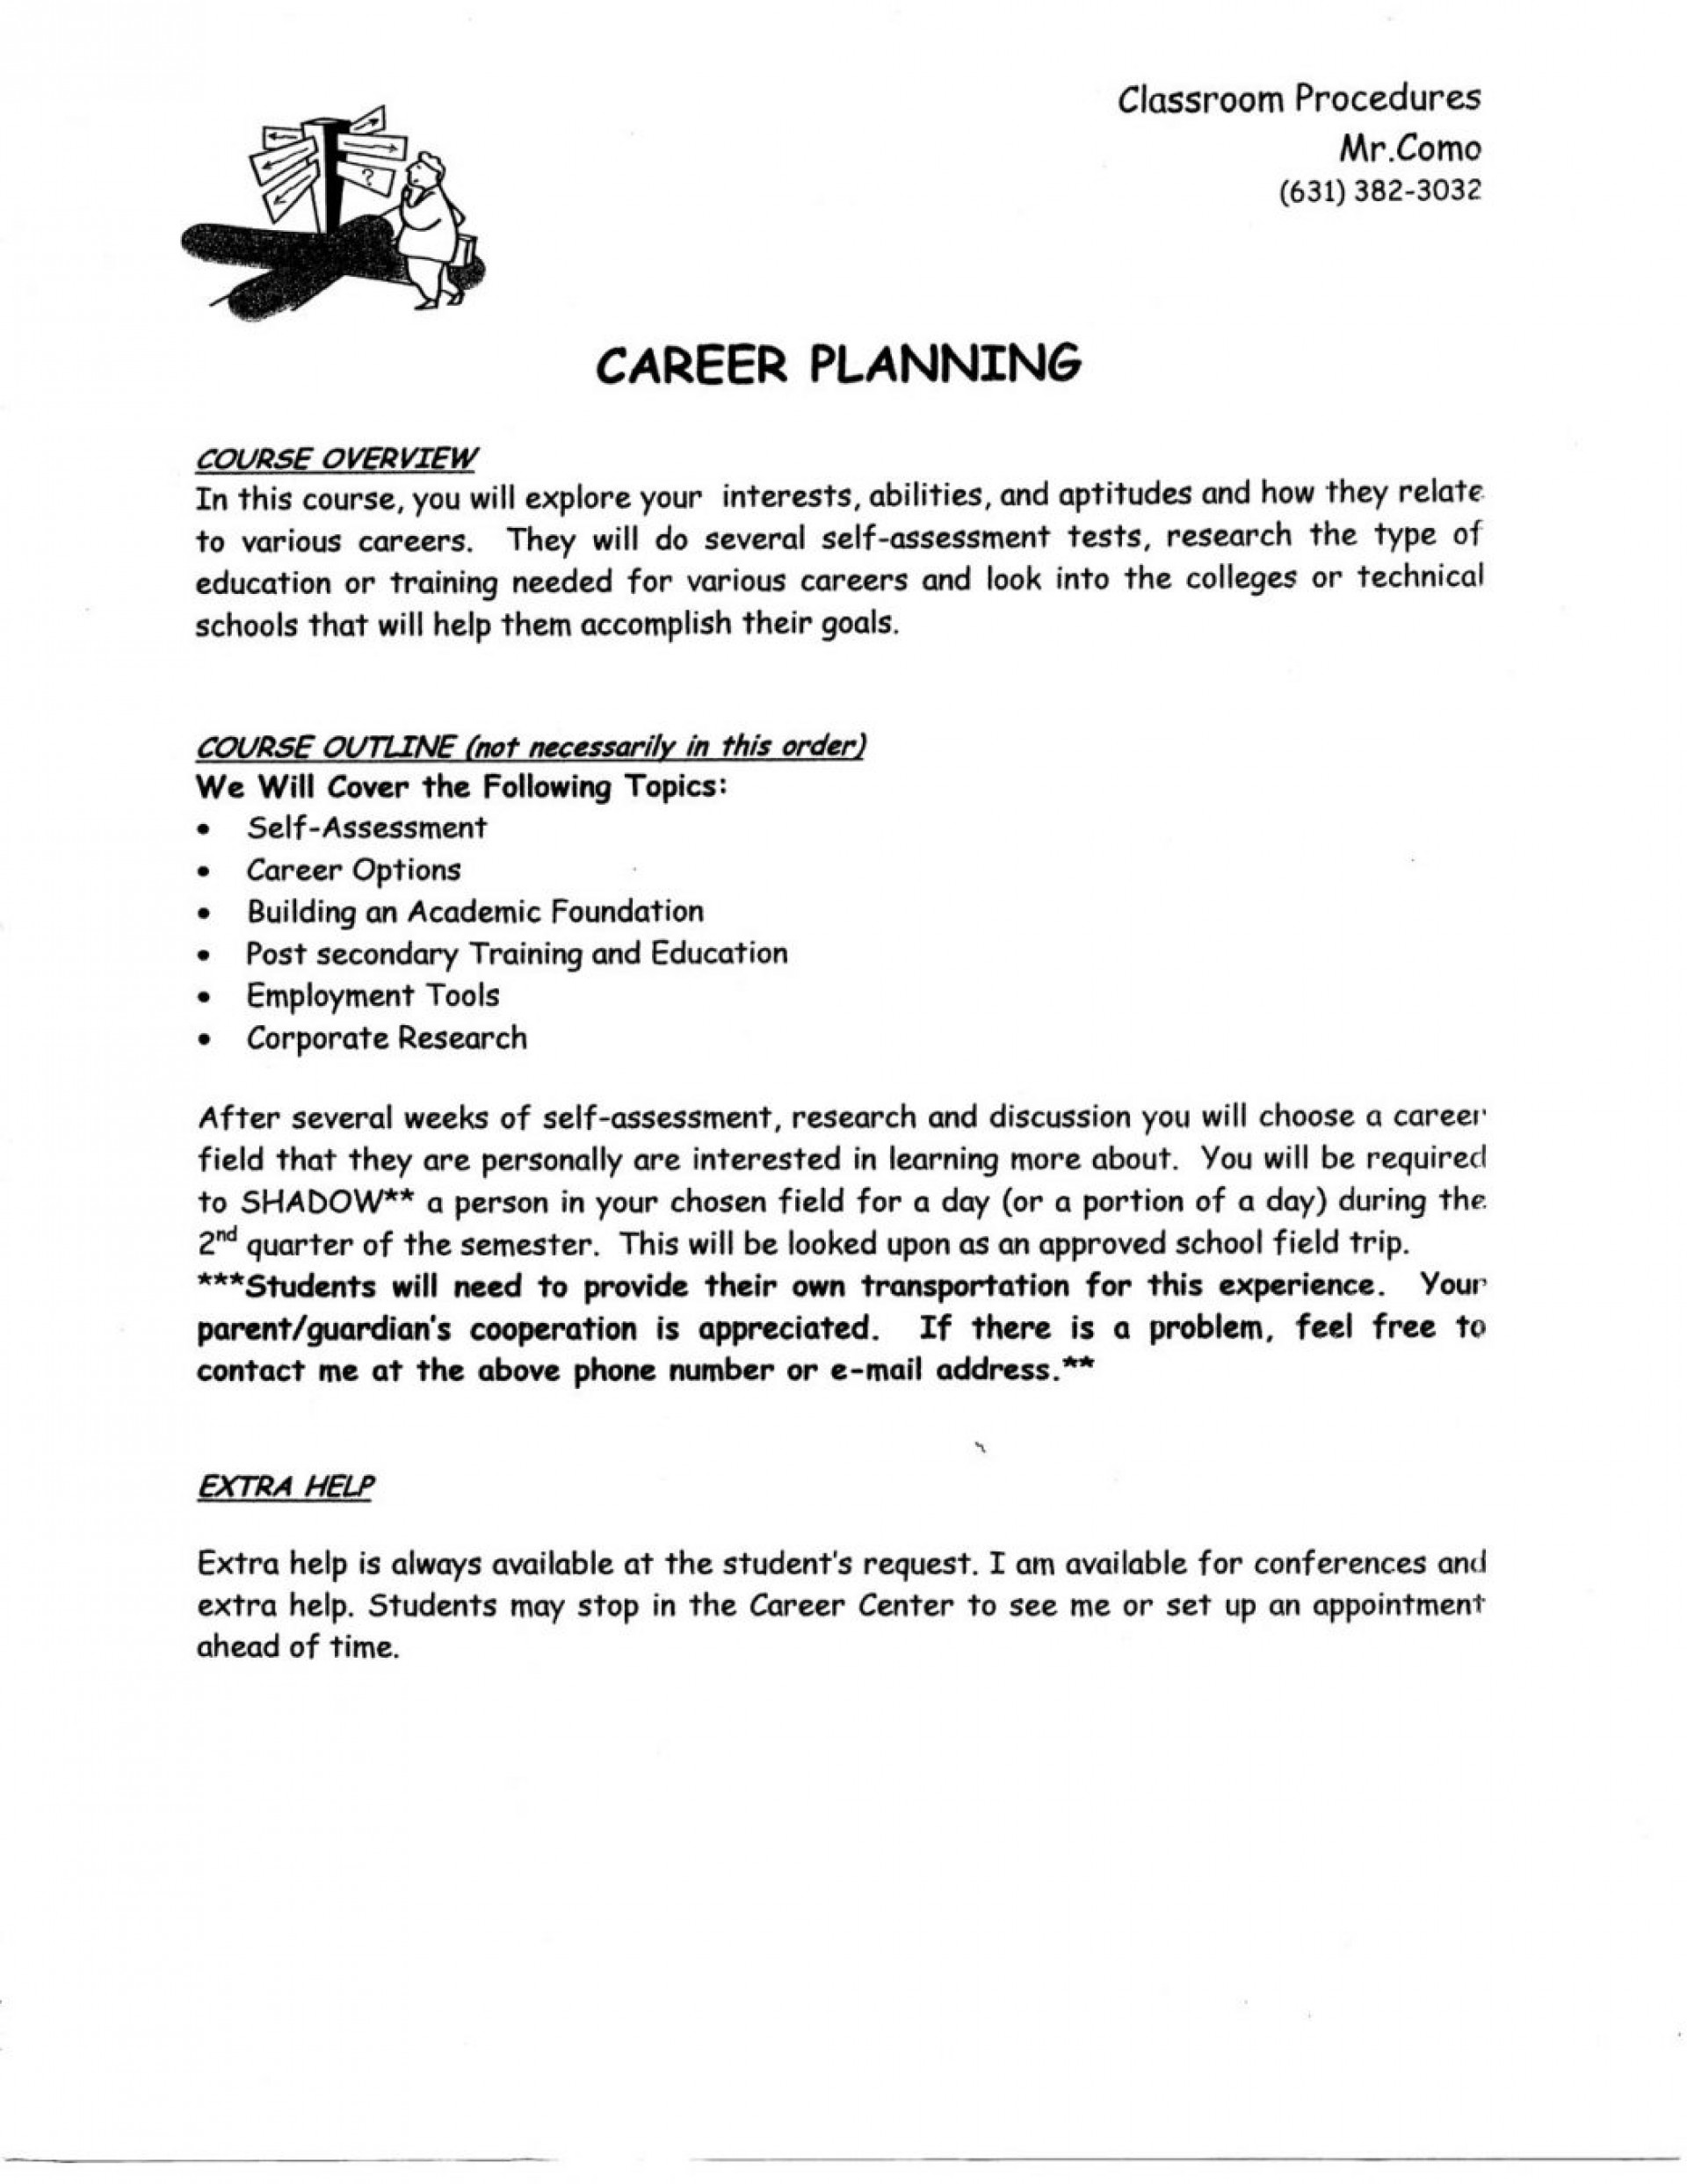 007 Essay Example Career Aspiration Sample Objective Ideas For Resume Planni Surprising 1920